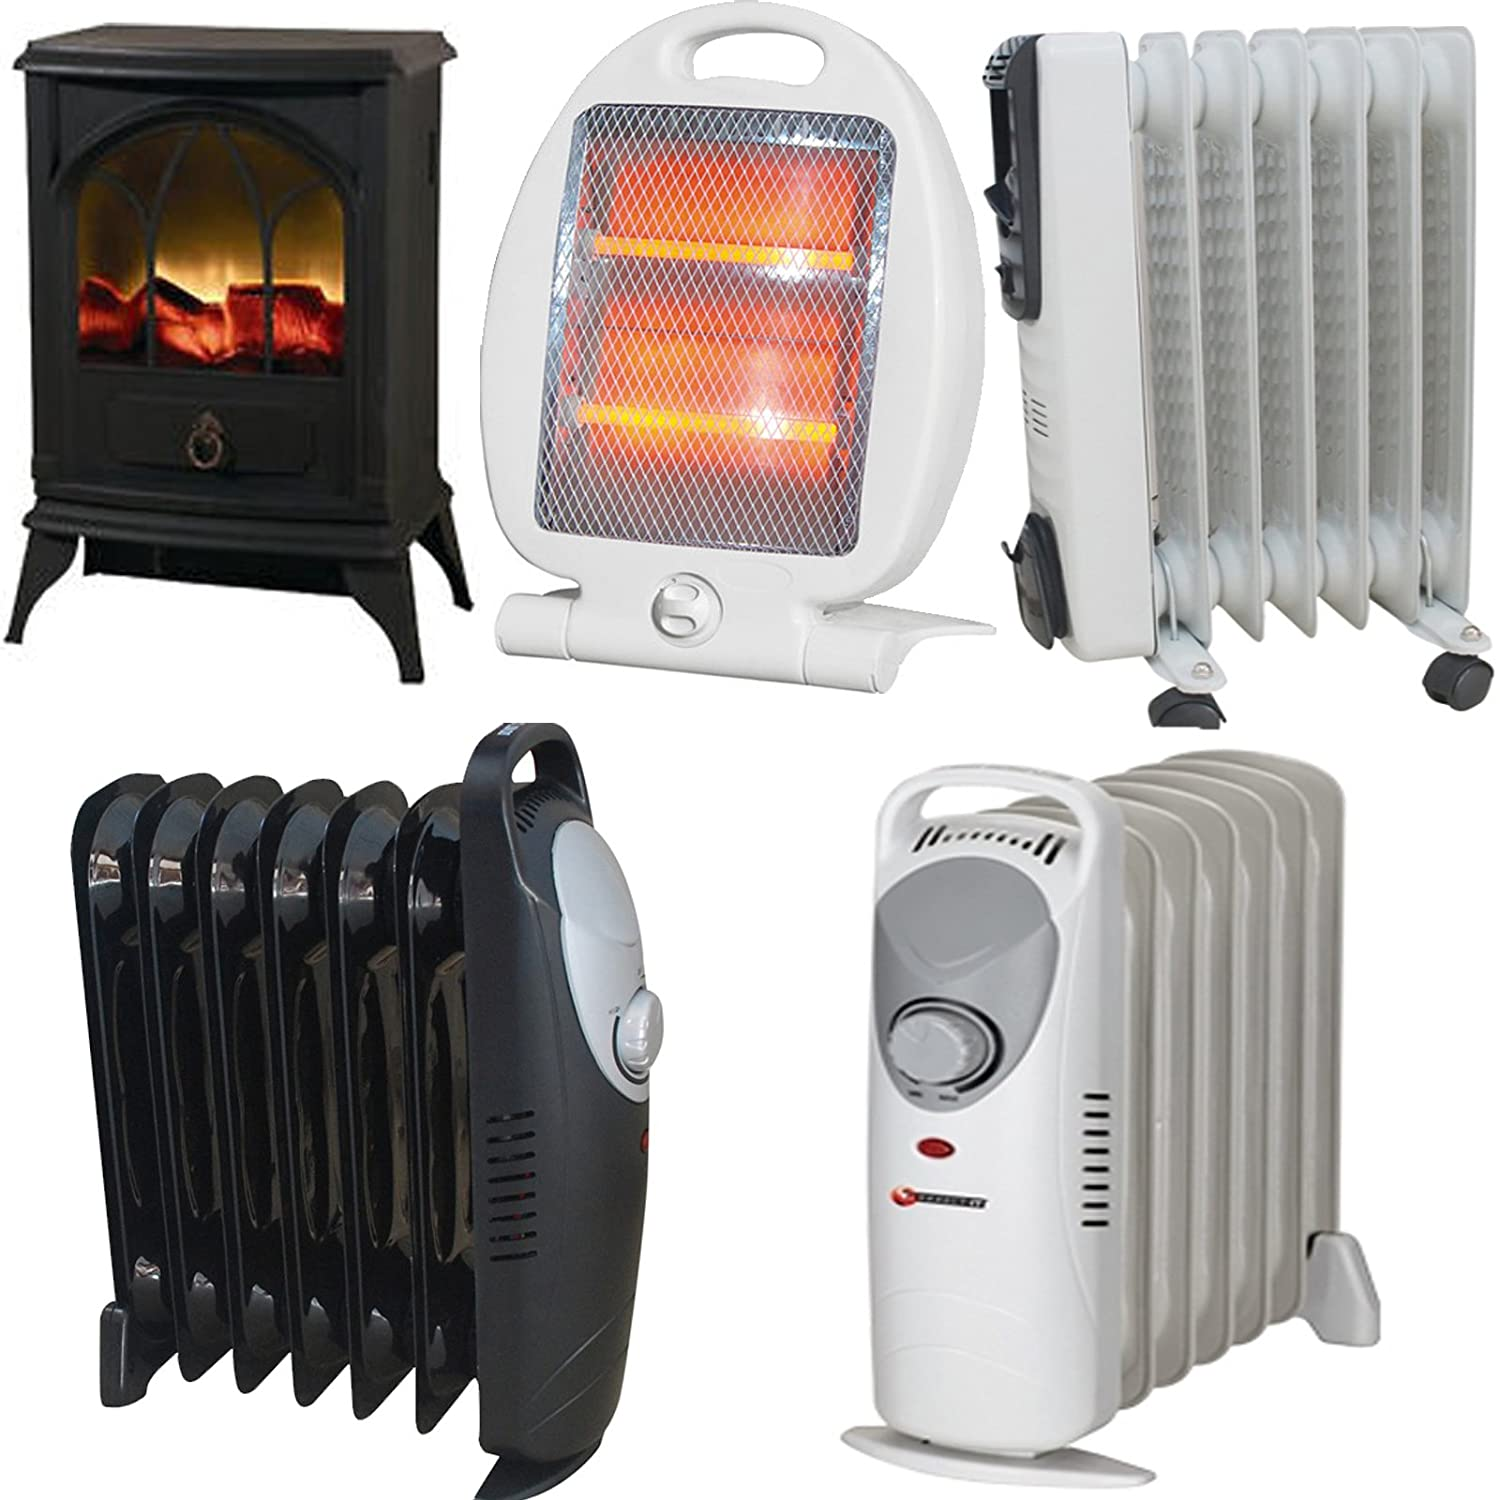 600W/700W/800W/1500W/2000W Fins Electric Oil Filled Radiator Heater 3 Heat Setting Thermostat Home & Office Heaters (800W Quartz Electric Heater) FunkyBuys